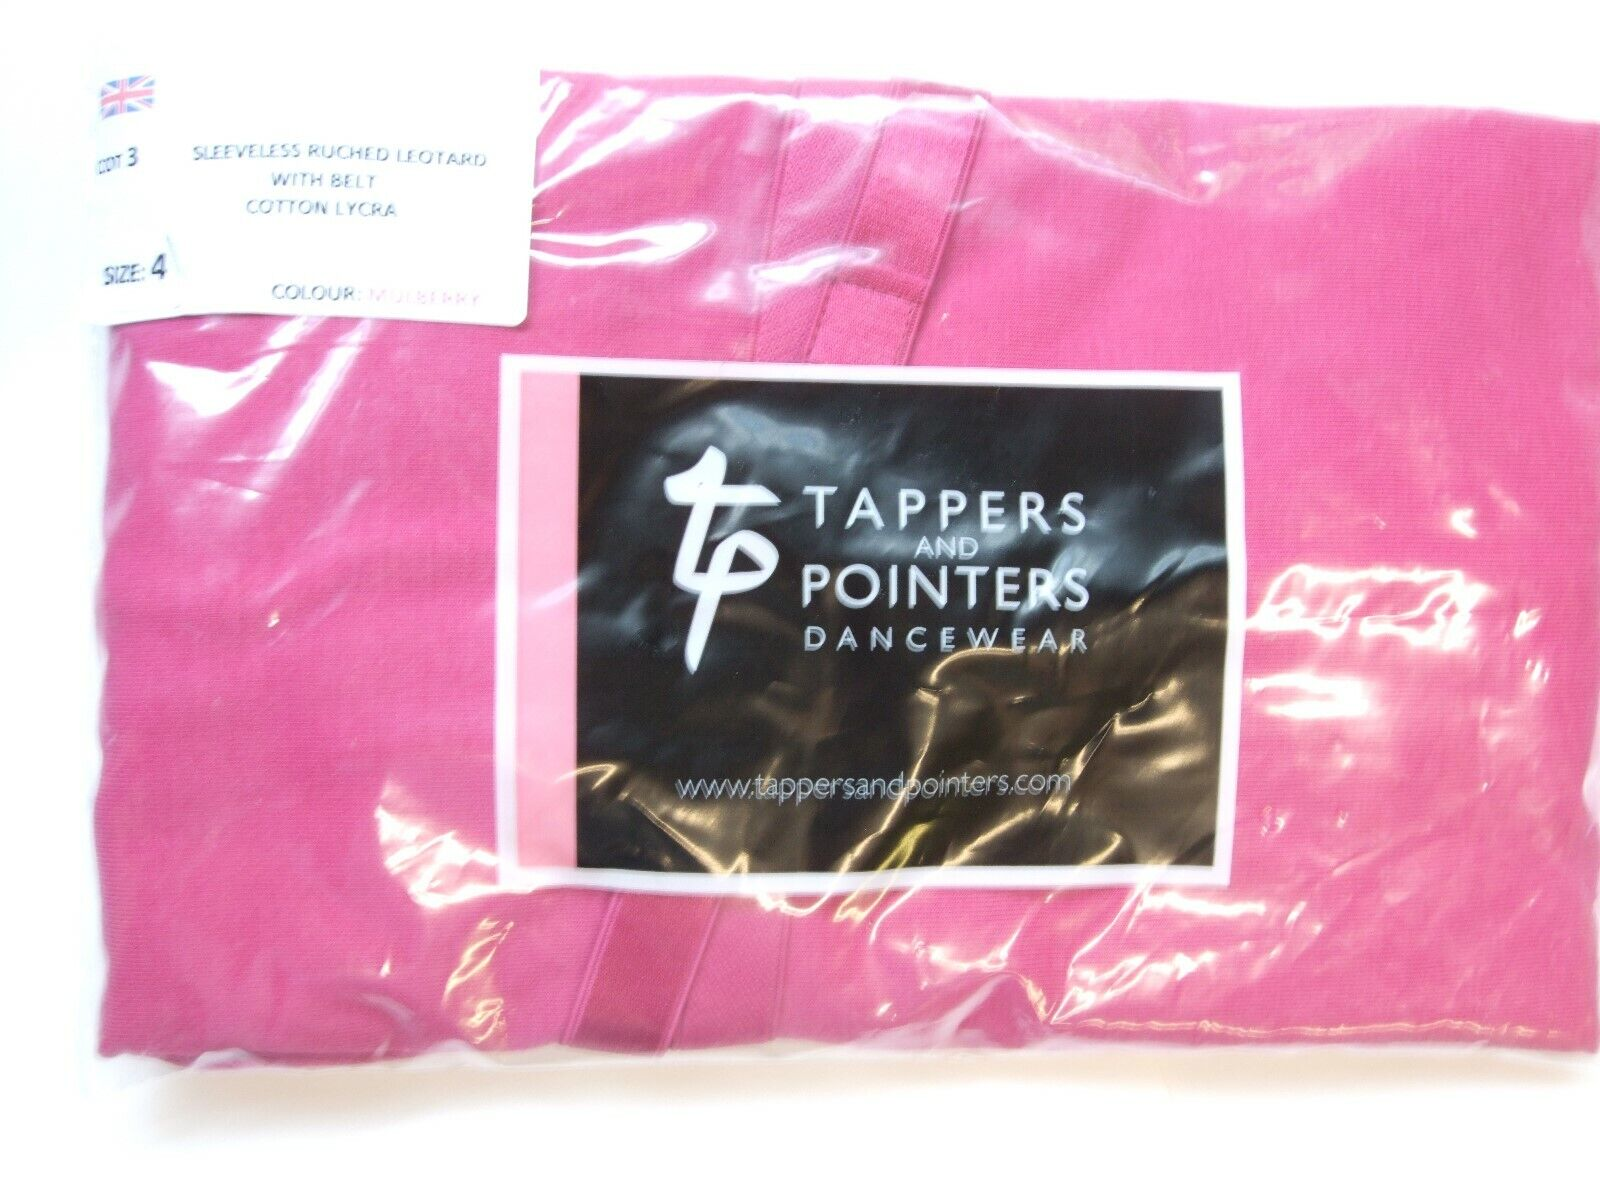 TAPPERS AND POINTERS DANCEWEAR. SLEEVLESS RUCHED LEOTARDWITH BELT. SIZE 4 COT 3